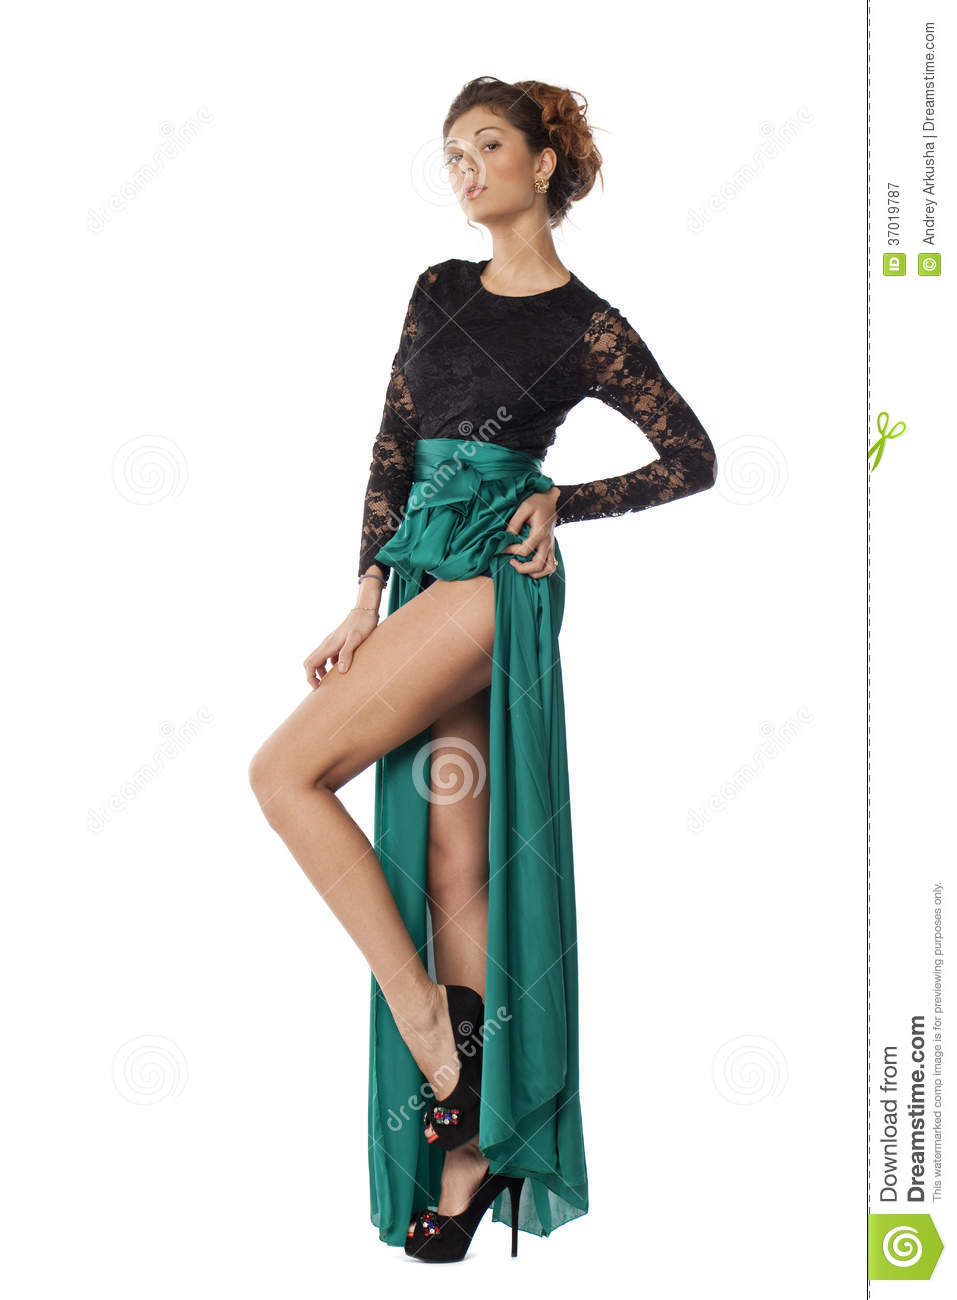 Fashion Model In Green Dress Stock Image - Image: 37019787